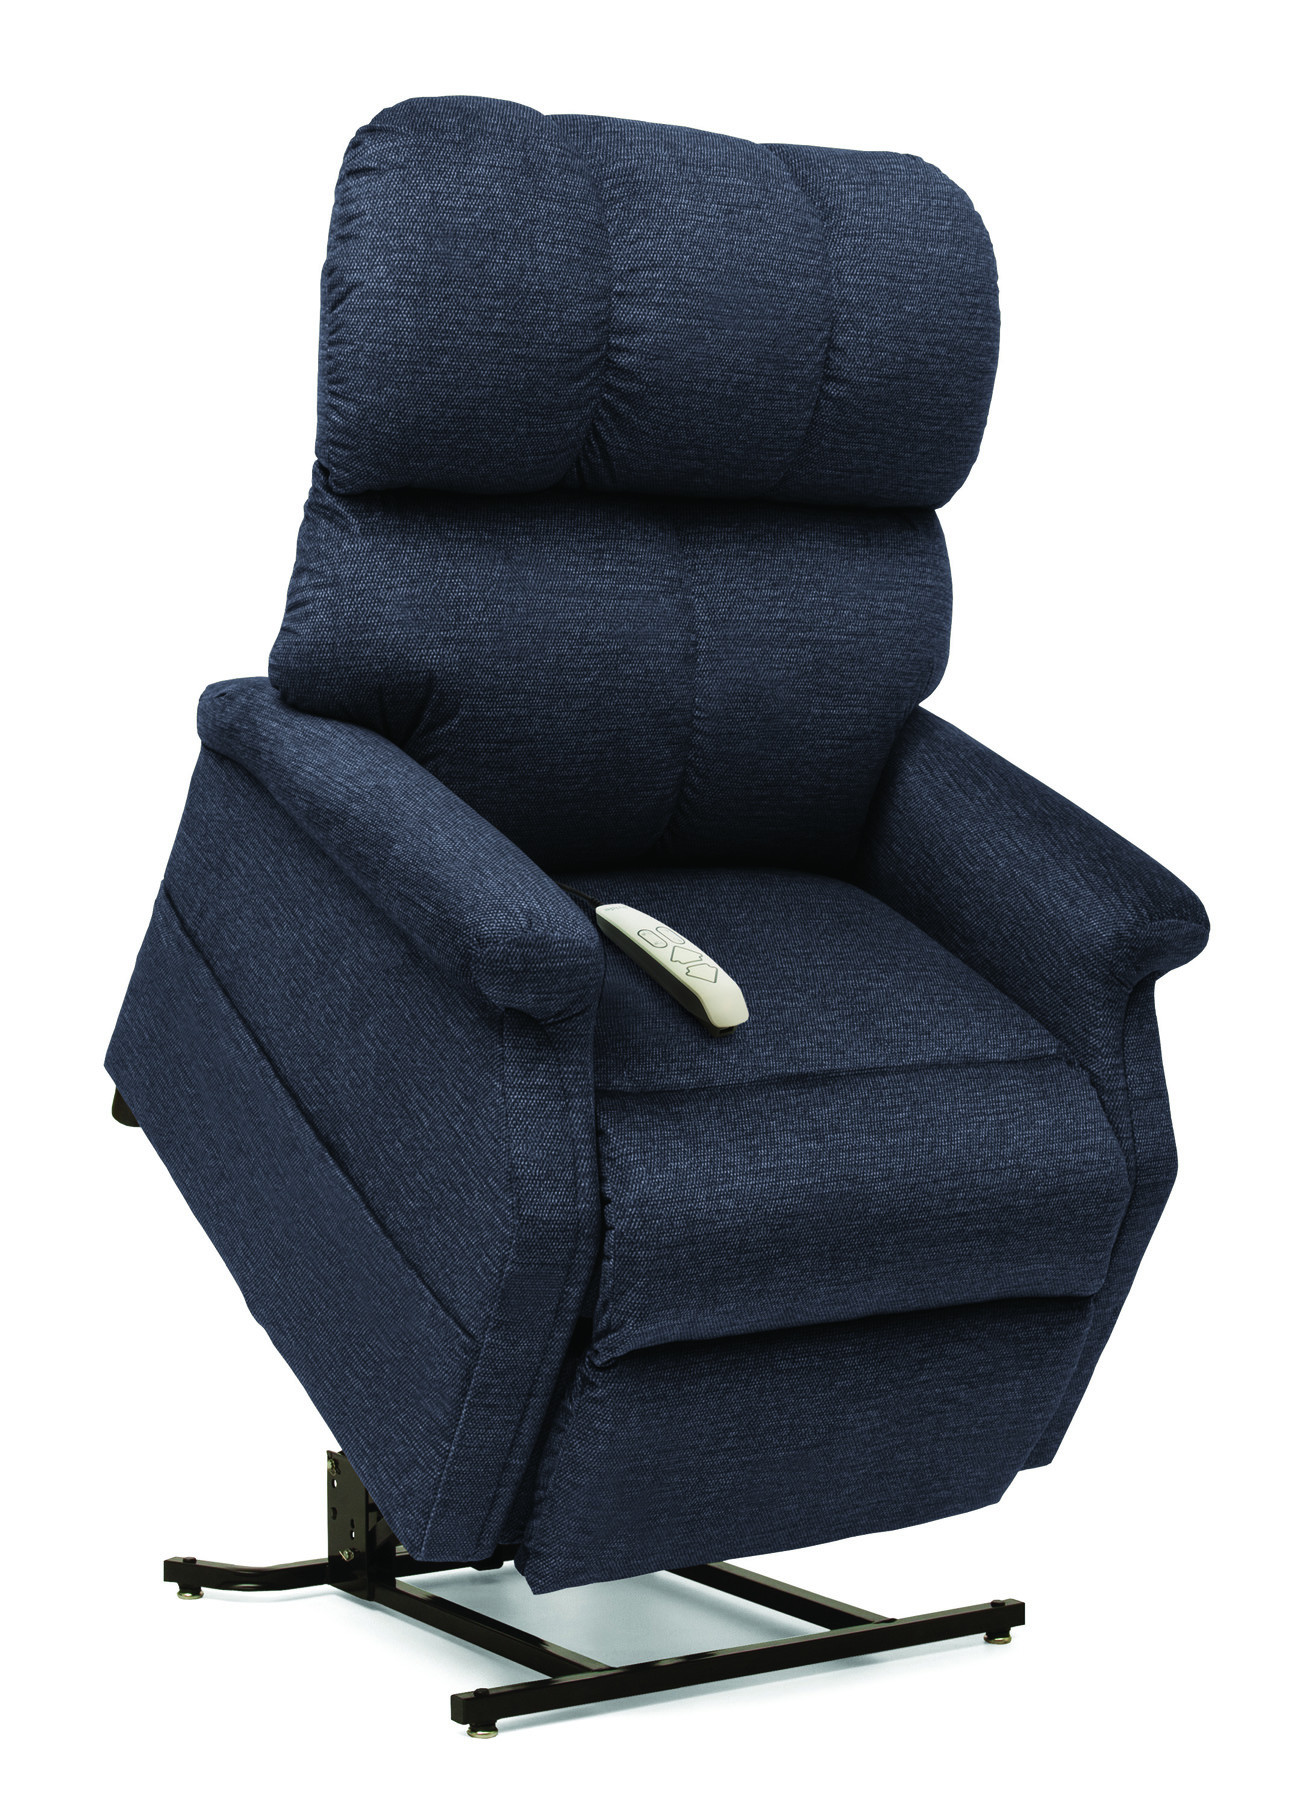 Pride Serenity SR 525 Lift Chair Affordable Lift Chairs Direct